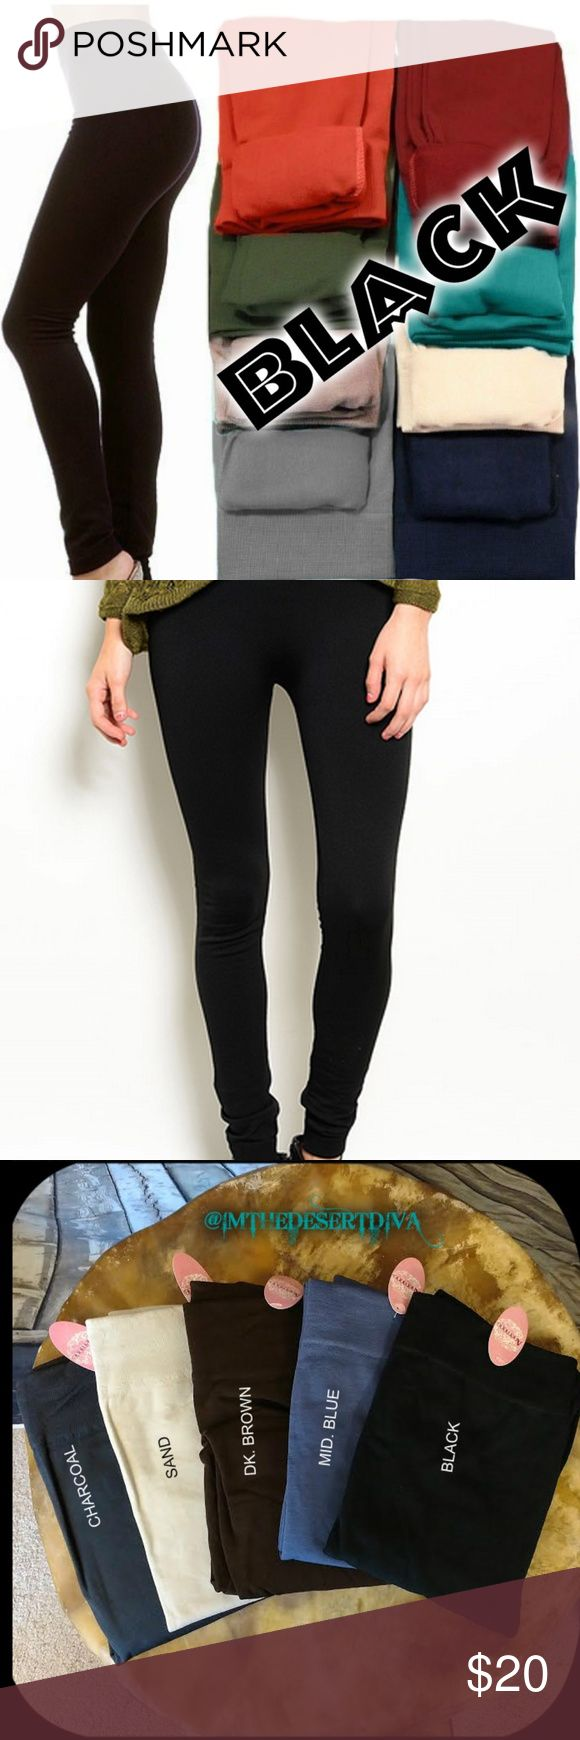 Black Fleece Line Leggings OSFM ONE SIZE FITS MOST(best fits S, M, L )  Super soft, very stretchy and stylish fleece leggings \ footless tights. Looks like a regular sleek legging but inside is soft and cozy fleece that is warm & comfy. Warmth and style without bulkiness. 65% Polyester, 20% Cotton, 15% Spandex.  Available in other listings: DK. BROWN CHARCOAL, MIDNIGHT BLUE, WINE & SAND.  Price Firm Unless Bundled No Trades Pants